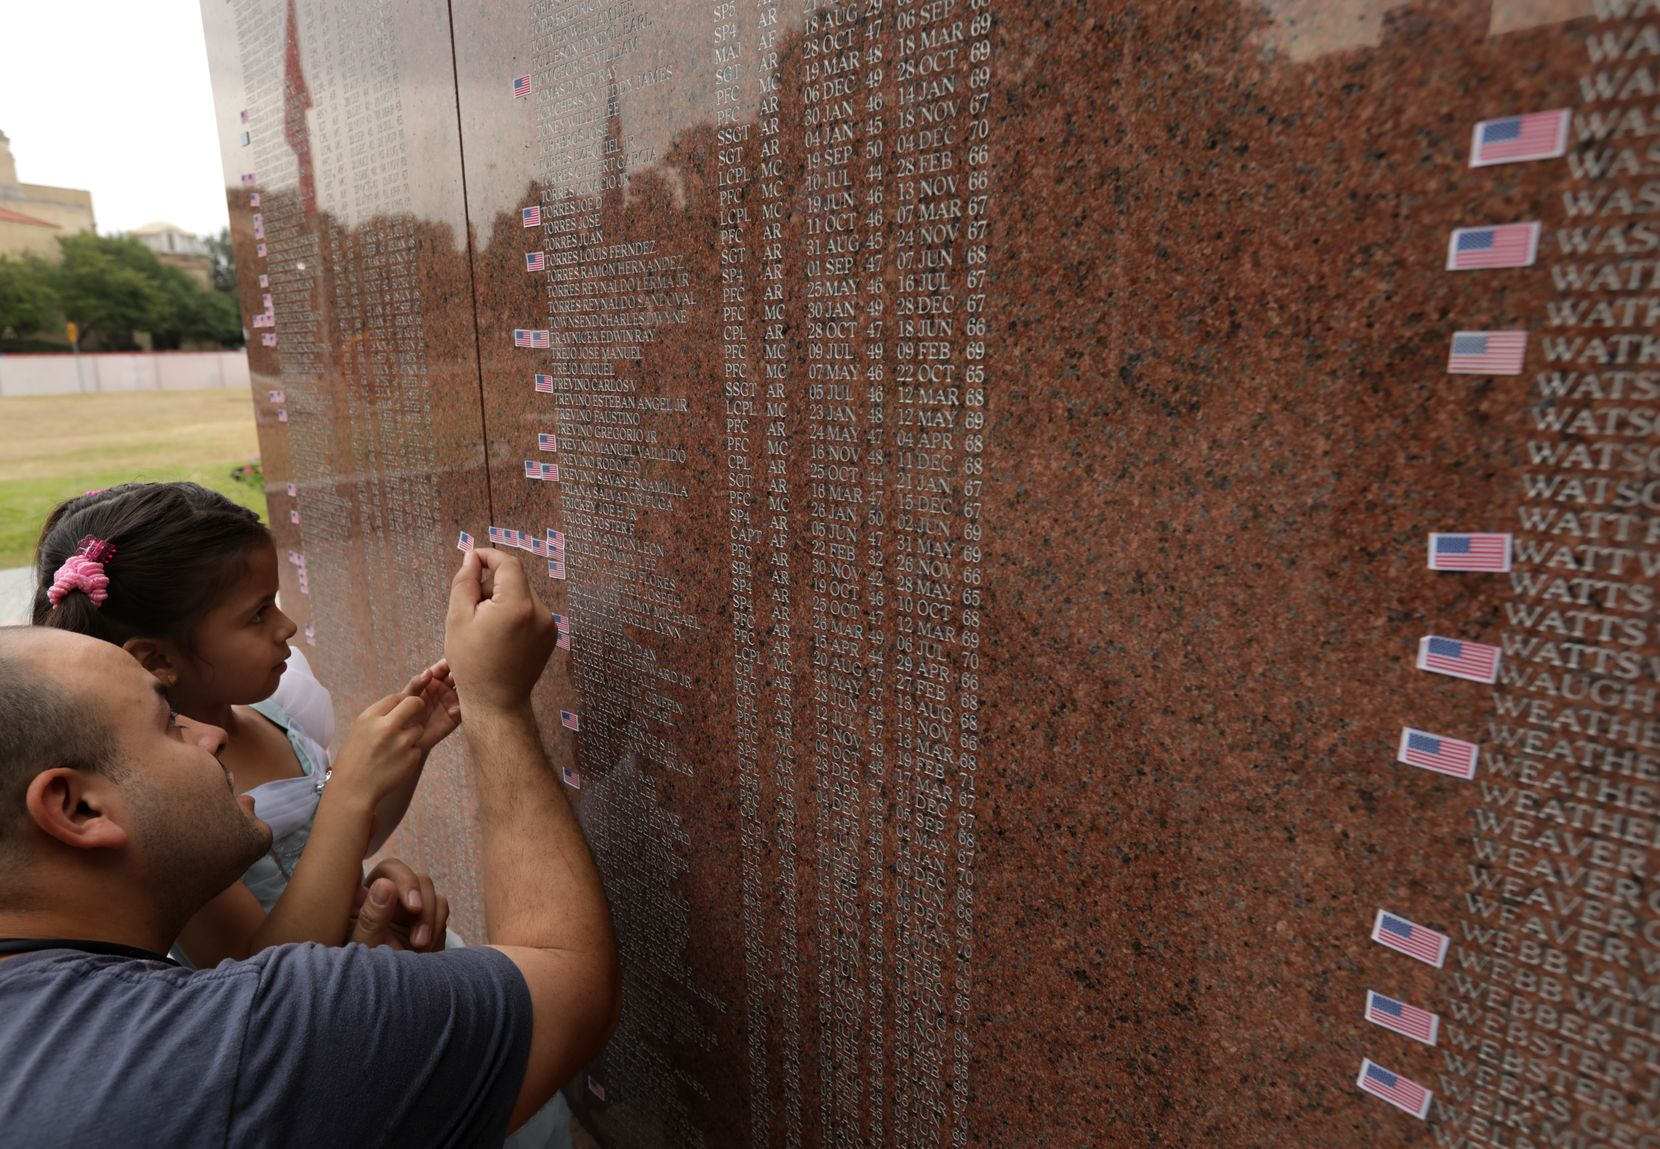 Omar Bravo and 6-year-old Caroline Bravo place a memorial flag sticker on one of the names engraved on the Texas Vietnam Veterans Memorial at Fair Park on Monday. They were two of the hundreds who have visited the monument during this year's fair.